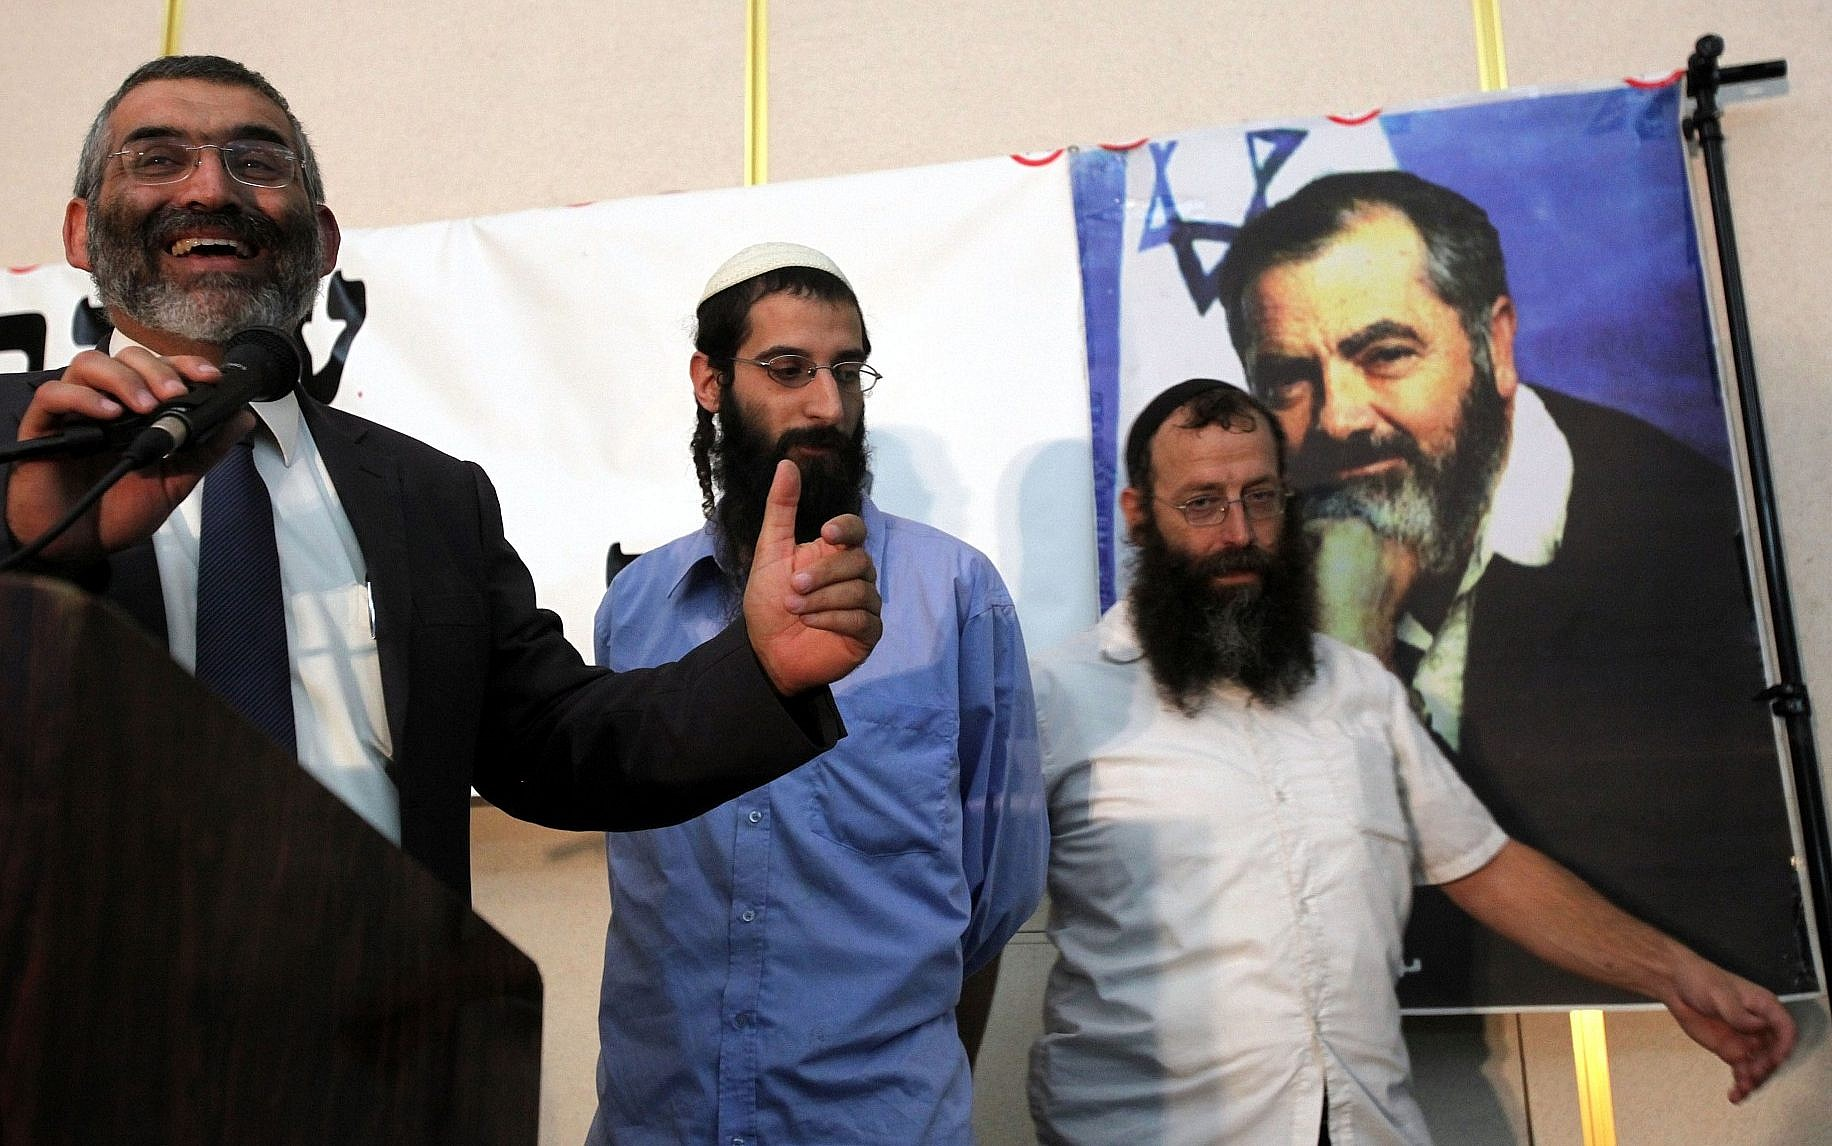 Michael Ben Ari (left) speaks during a ceremony honoring the late Jewish extremist leader Rabbi Meir Kahane in a Jerusalem hall, October 26 2010. At right is Baruch Marzel (Yossi Zamir / Flash 90)